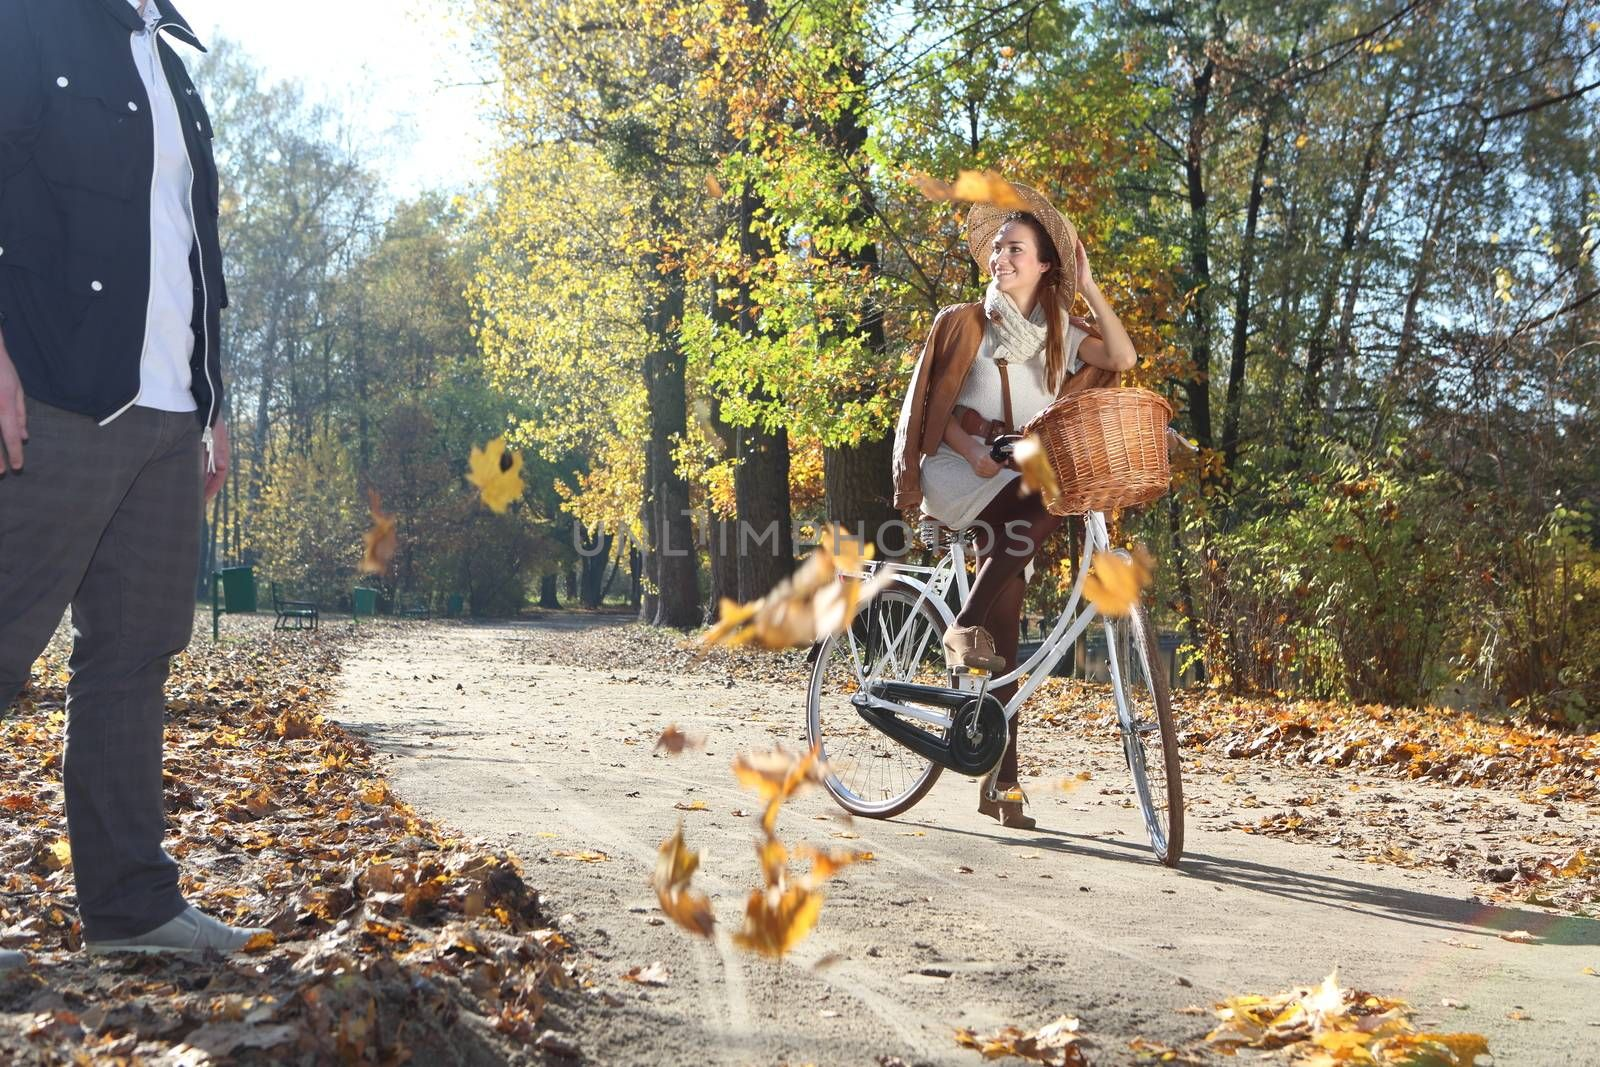 girl on a bicycle in a park alley background color of autumn leaves